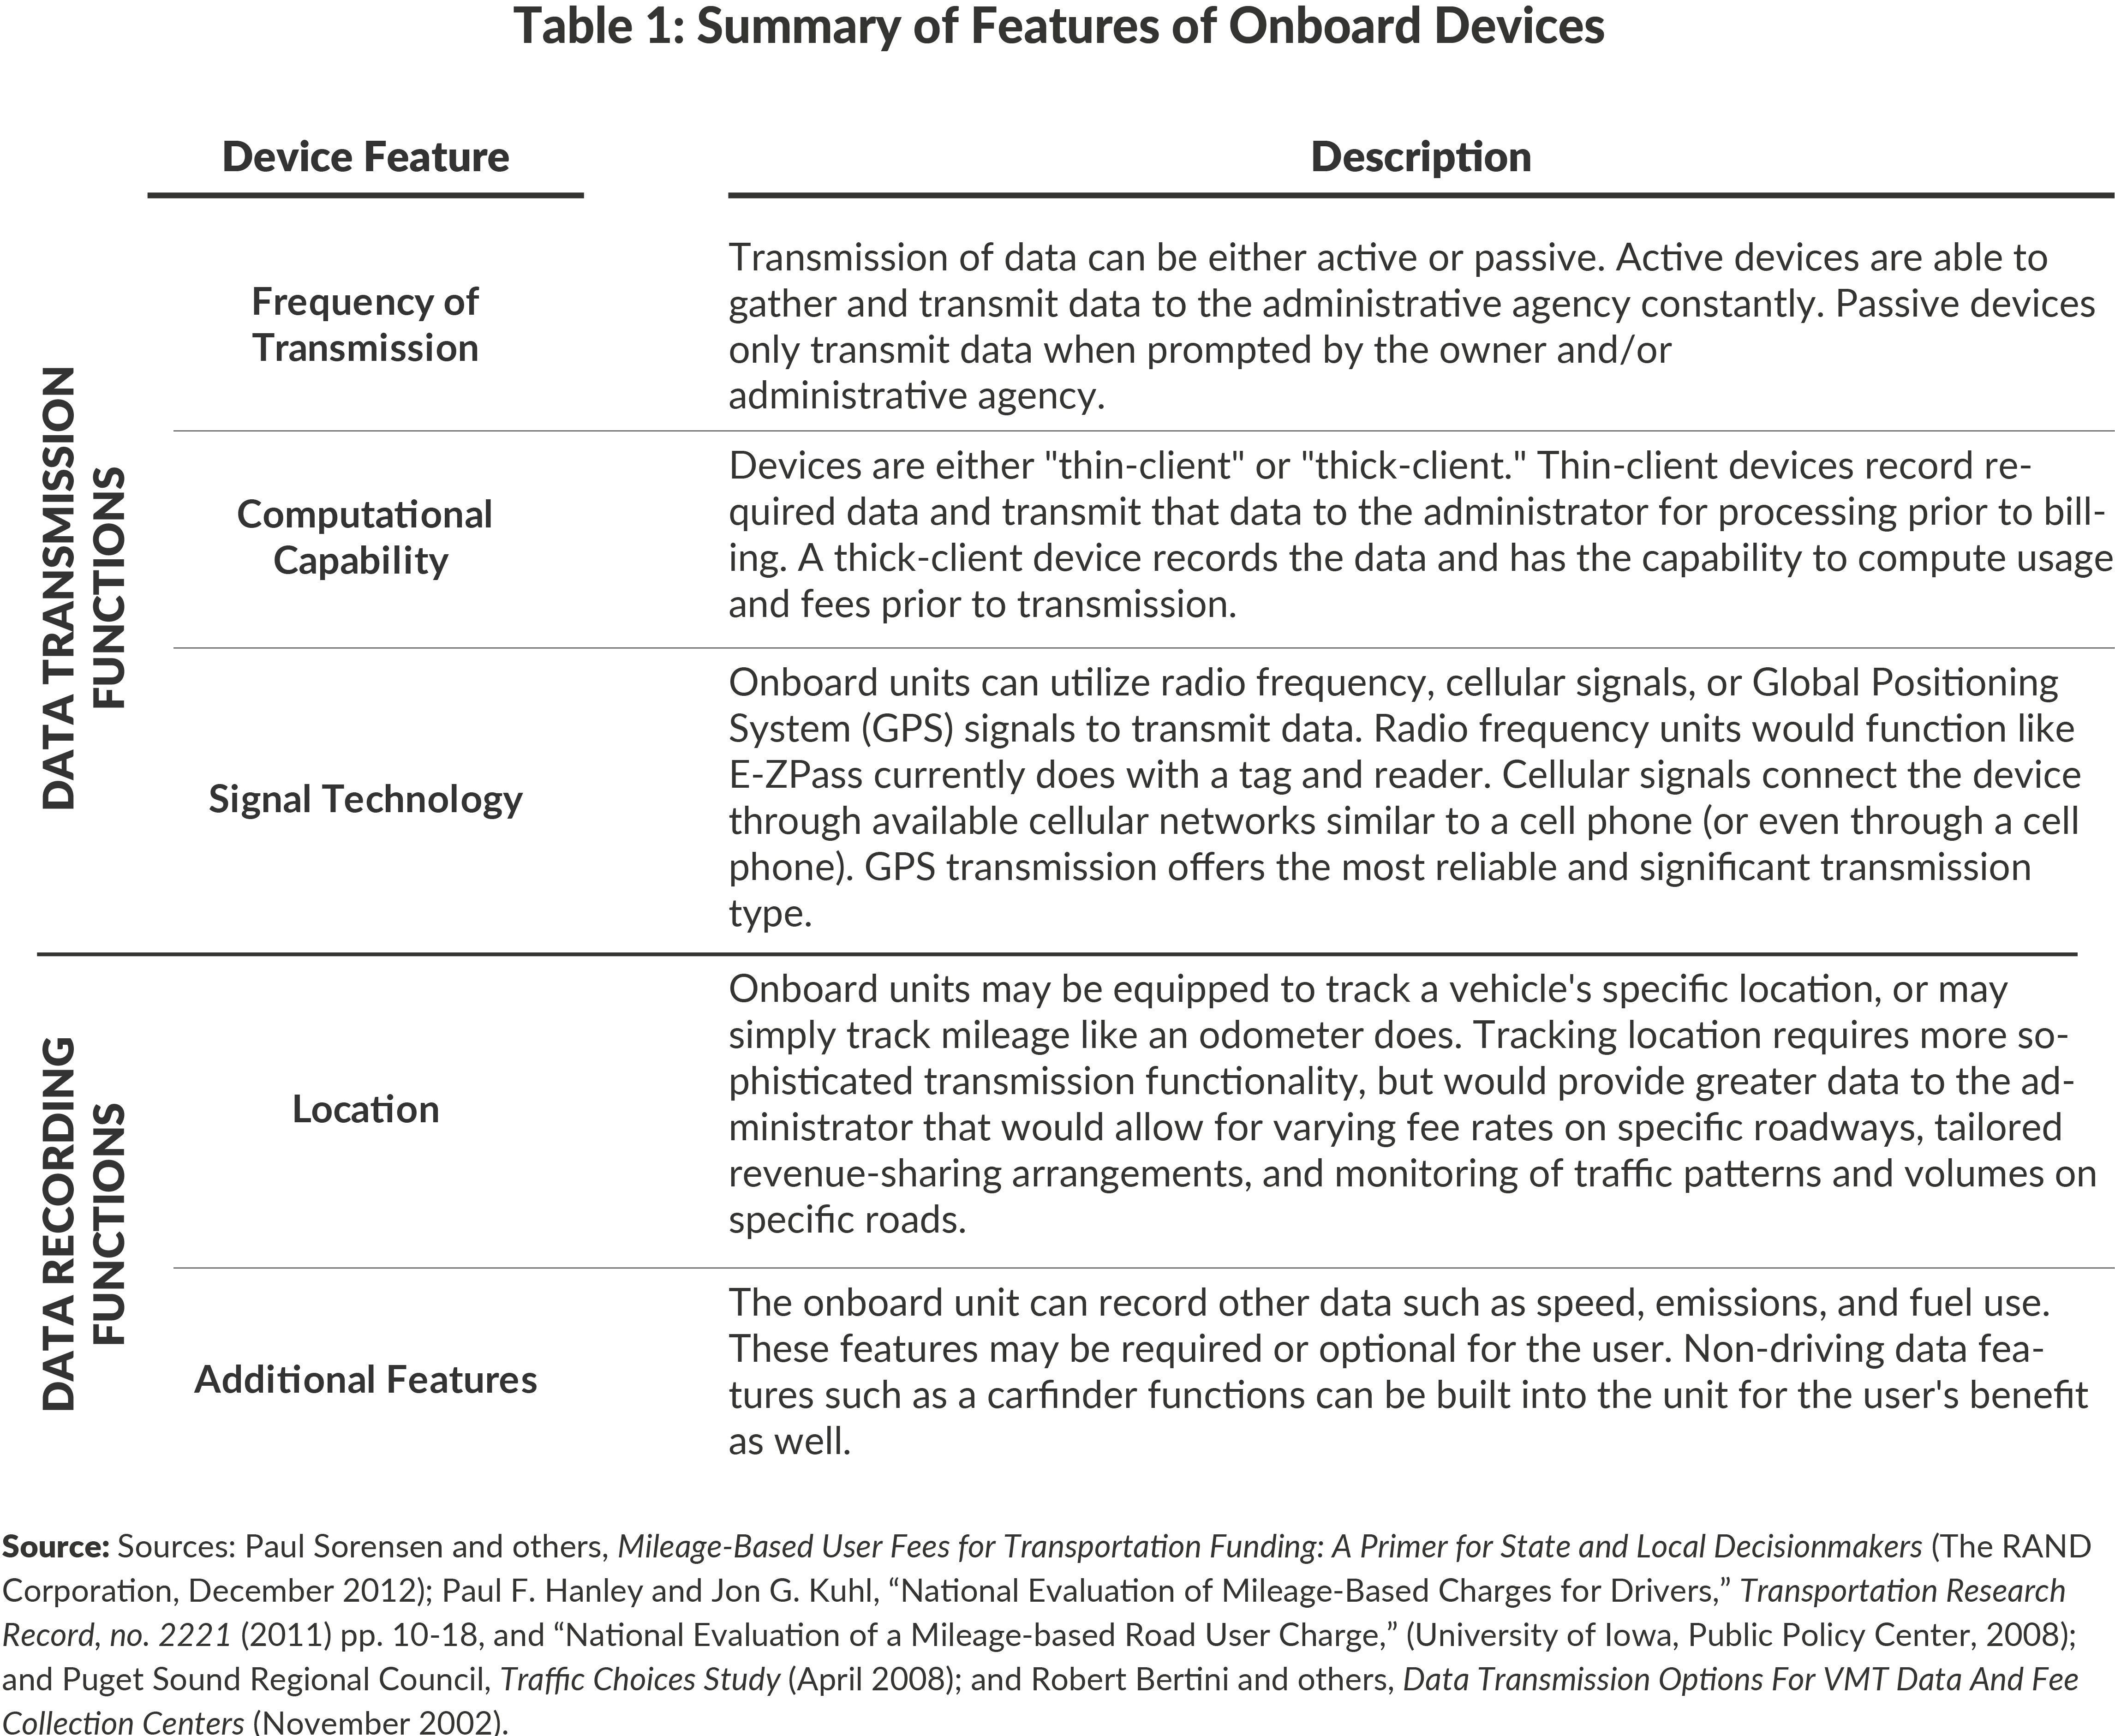 Table 1: Summary of Features of Onboard Devices